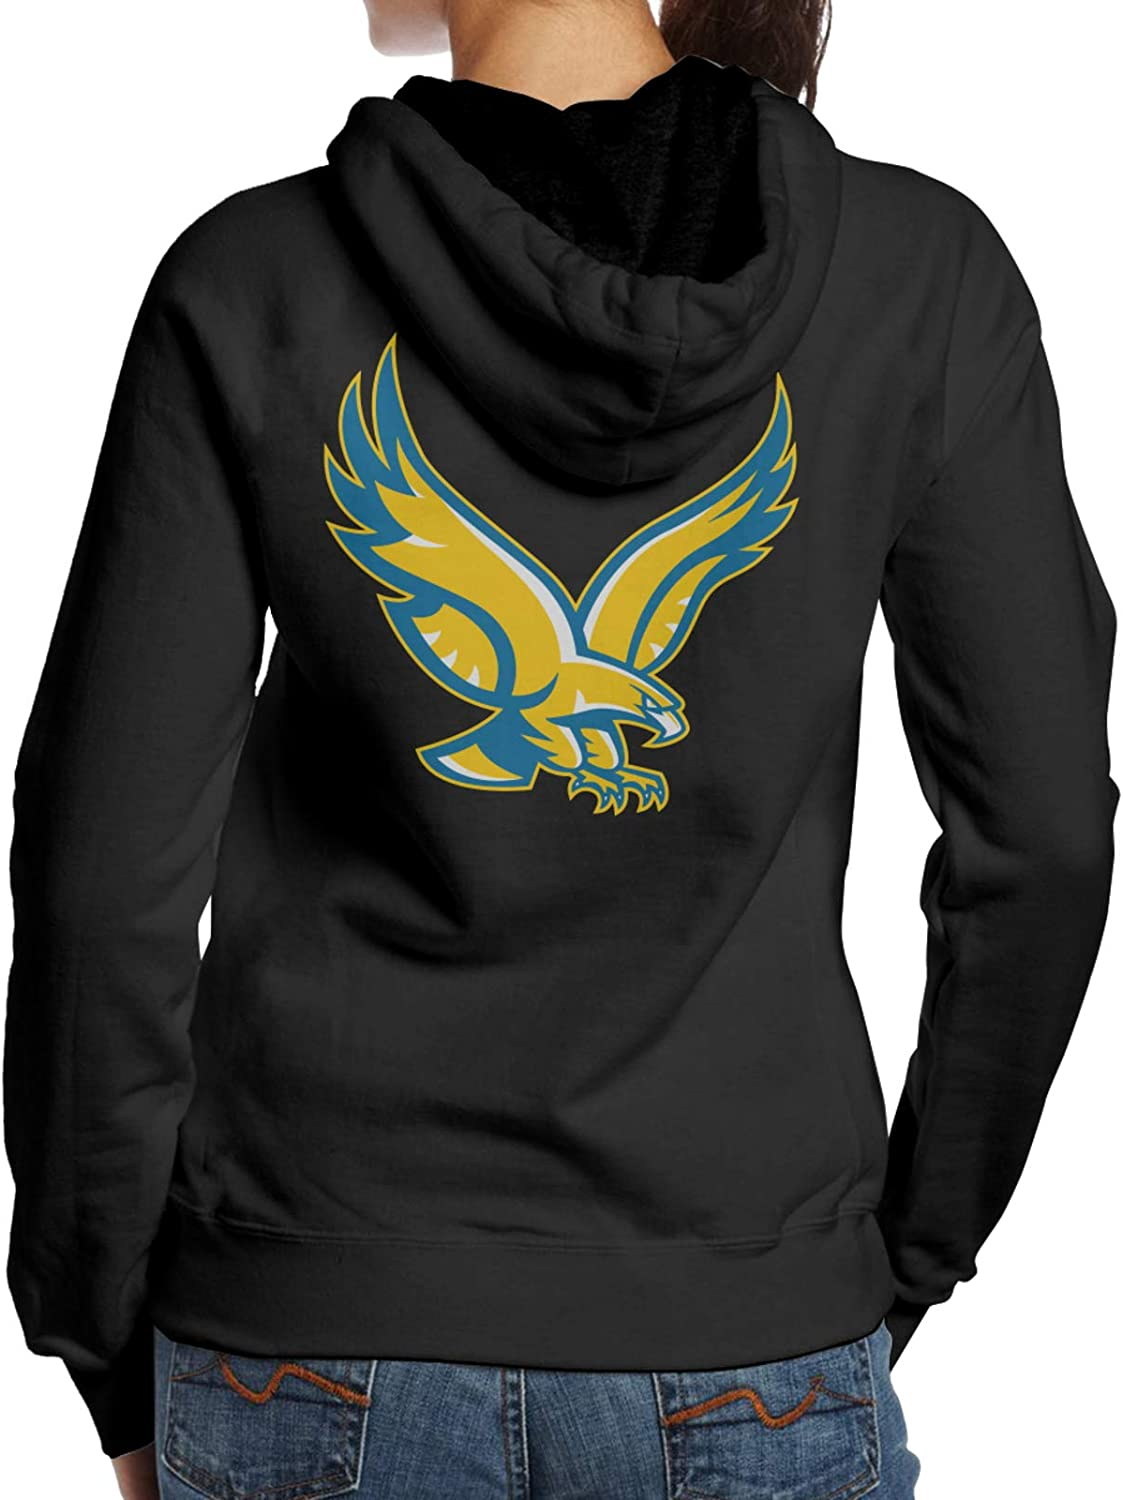 Golden Nashville-Davidson Mall Parrot low-pricing Womans Hoodie Sweatshirt Sweater Casual Fashion